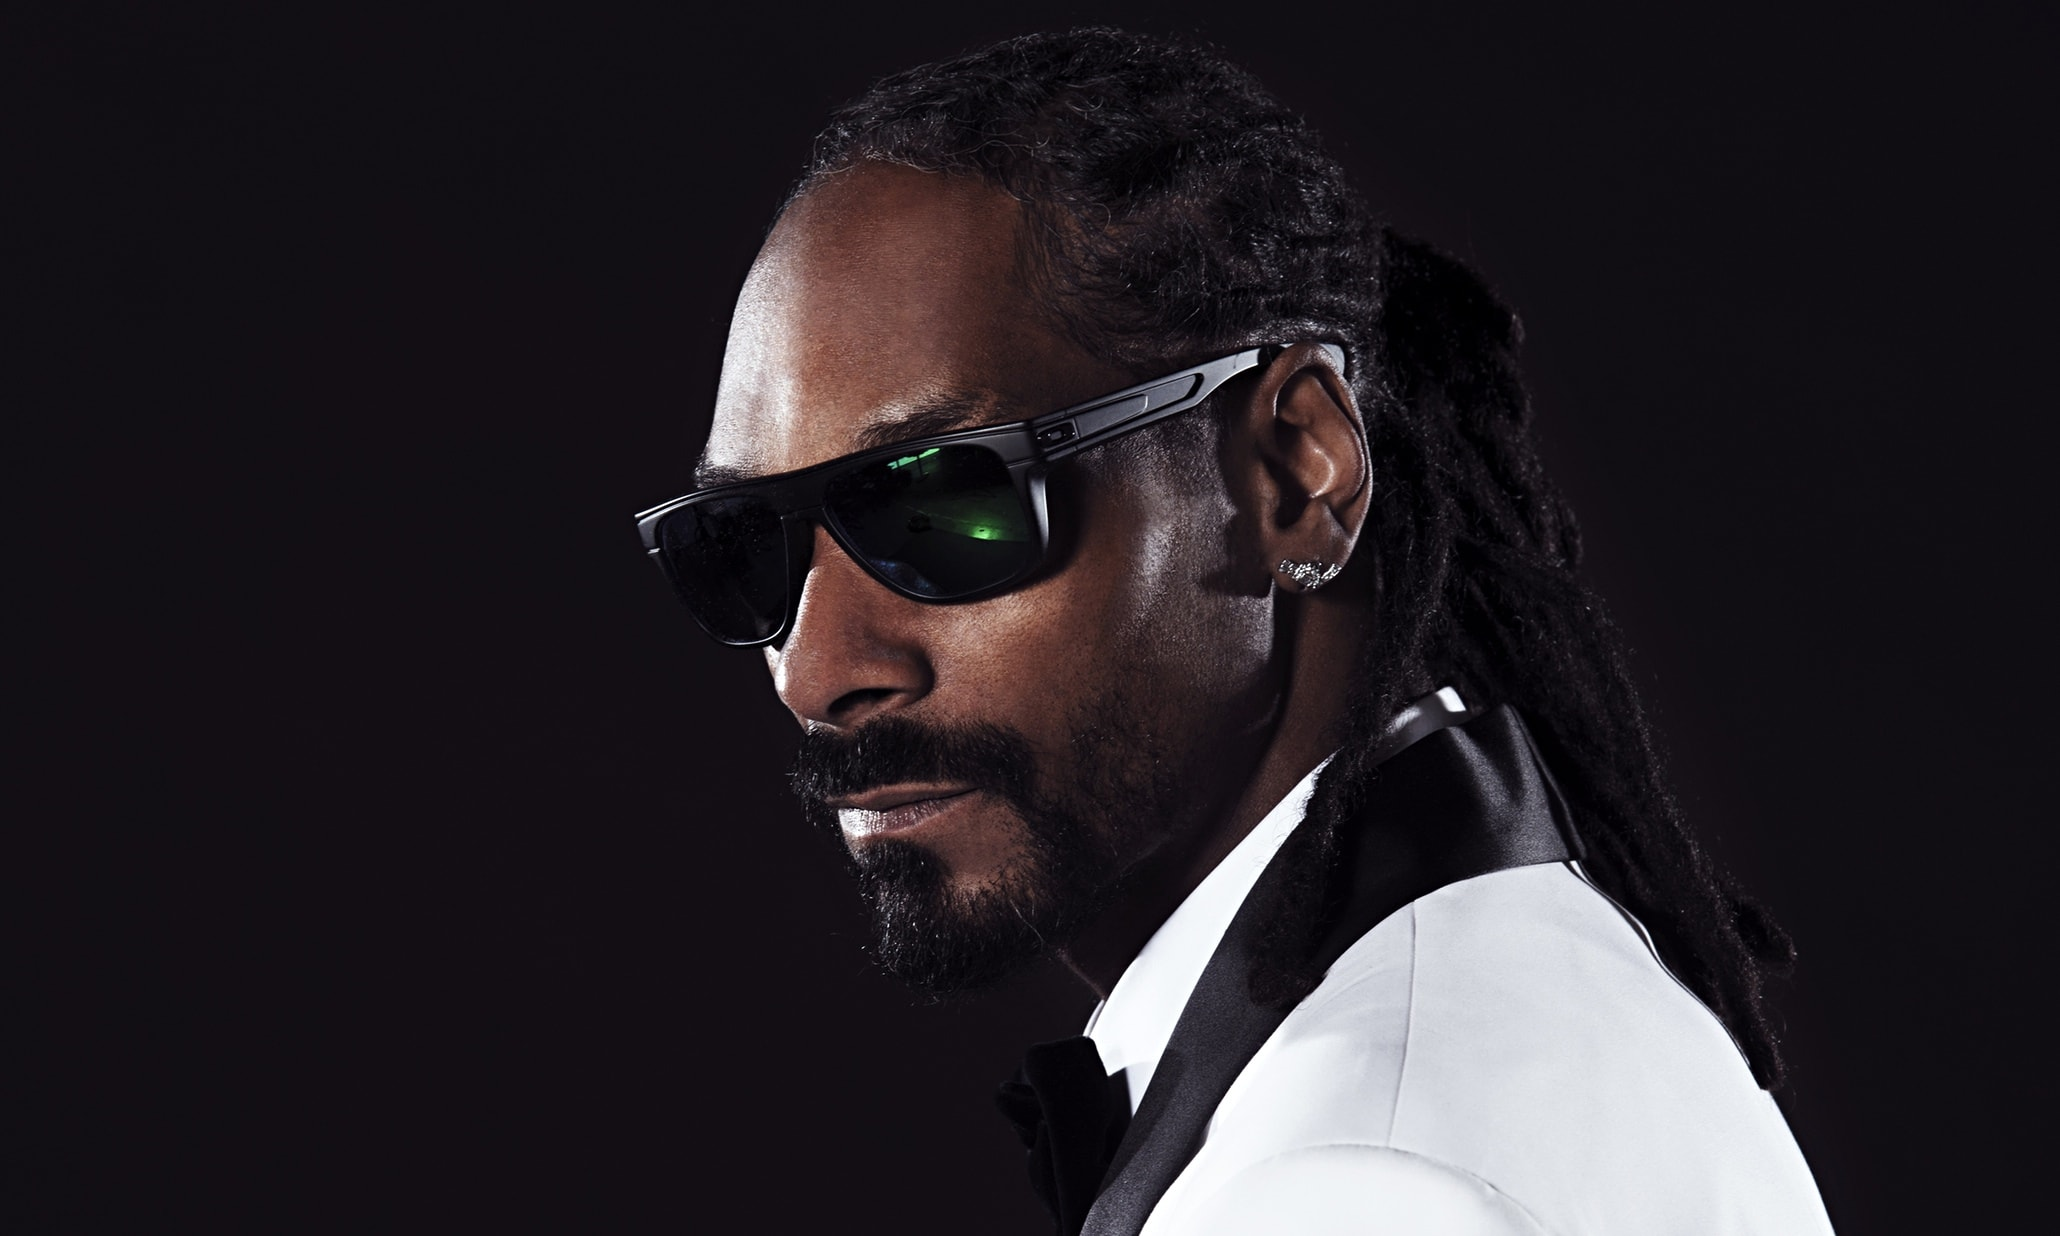 Snoop Dogg Hd Wallpapers 7wallpapers Net